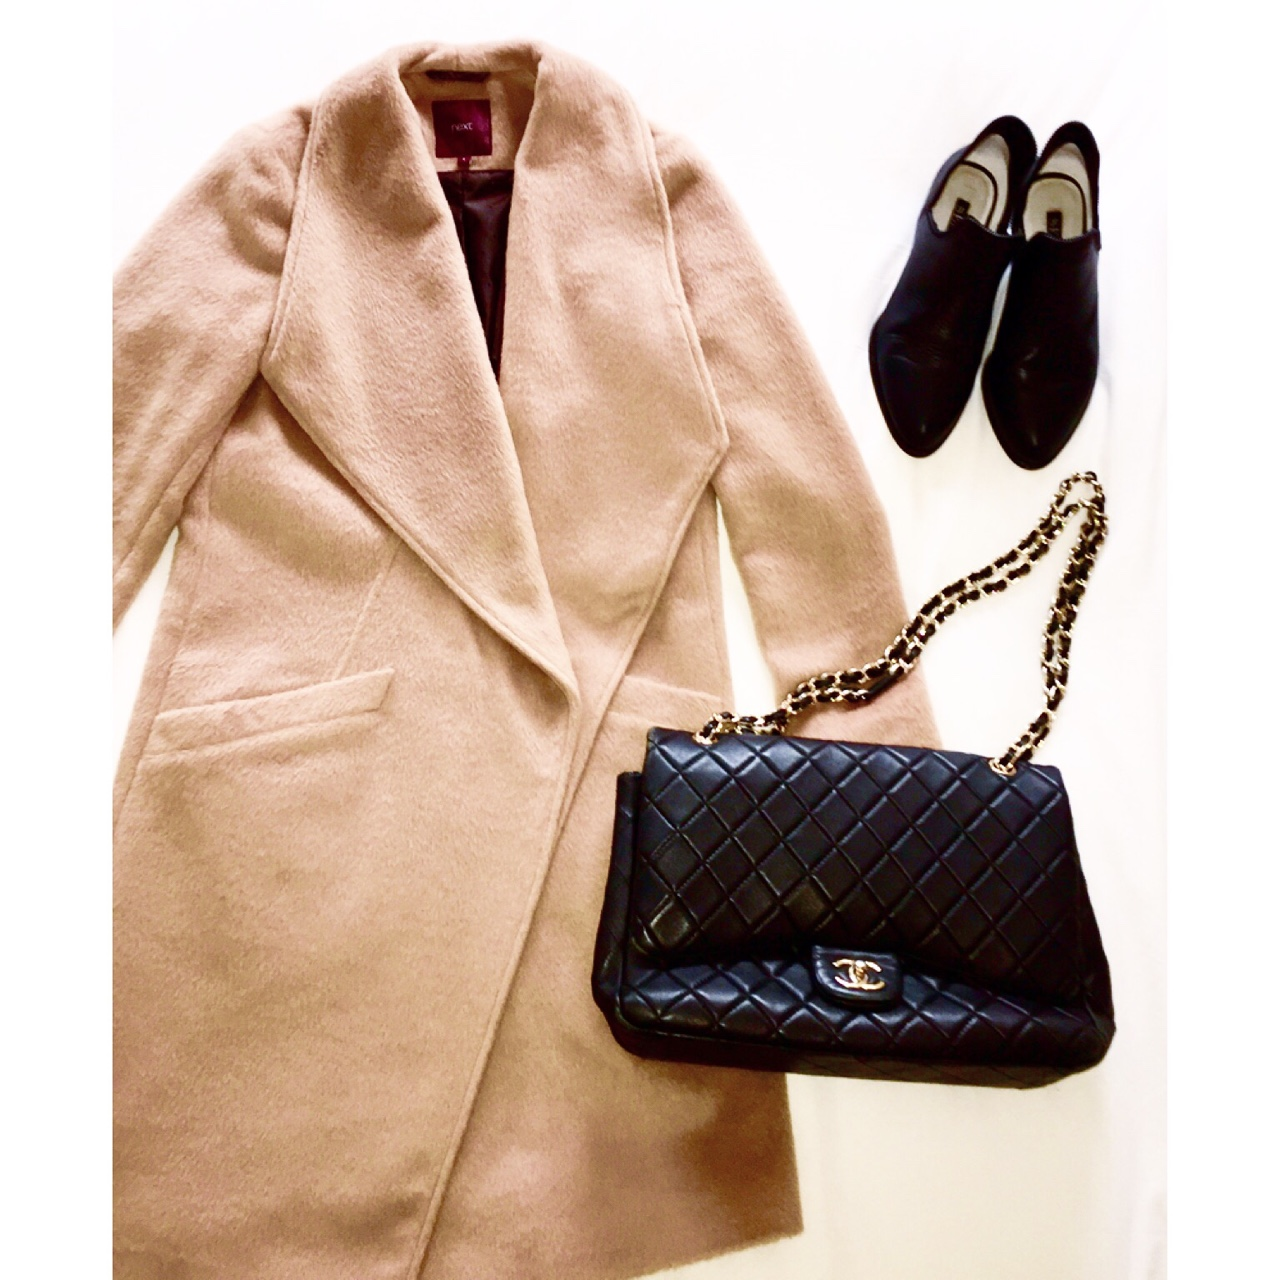 Autumn Essentials Camel wrap coat from Next, black booties from Senso and Chanel shoulder bag. //SHE